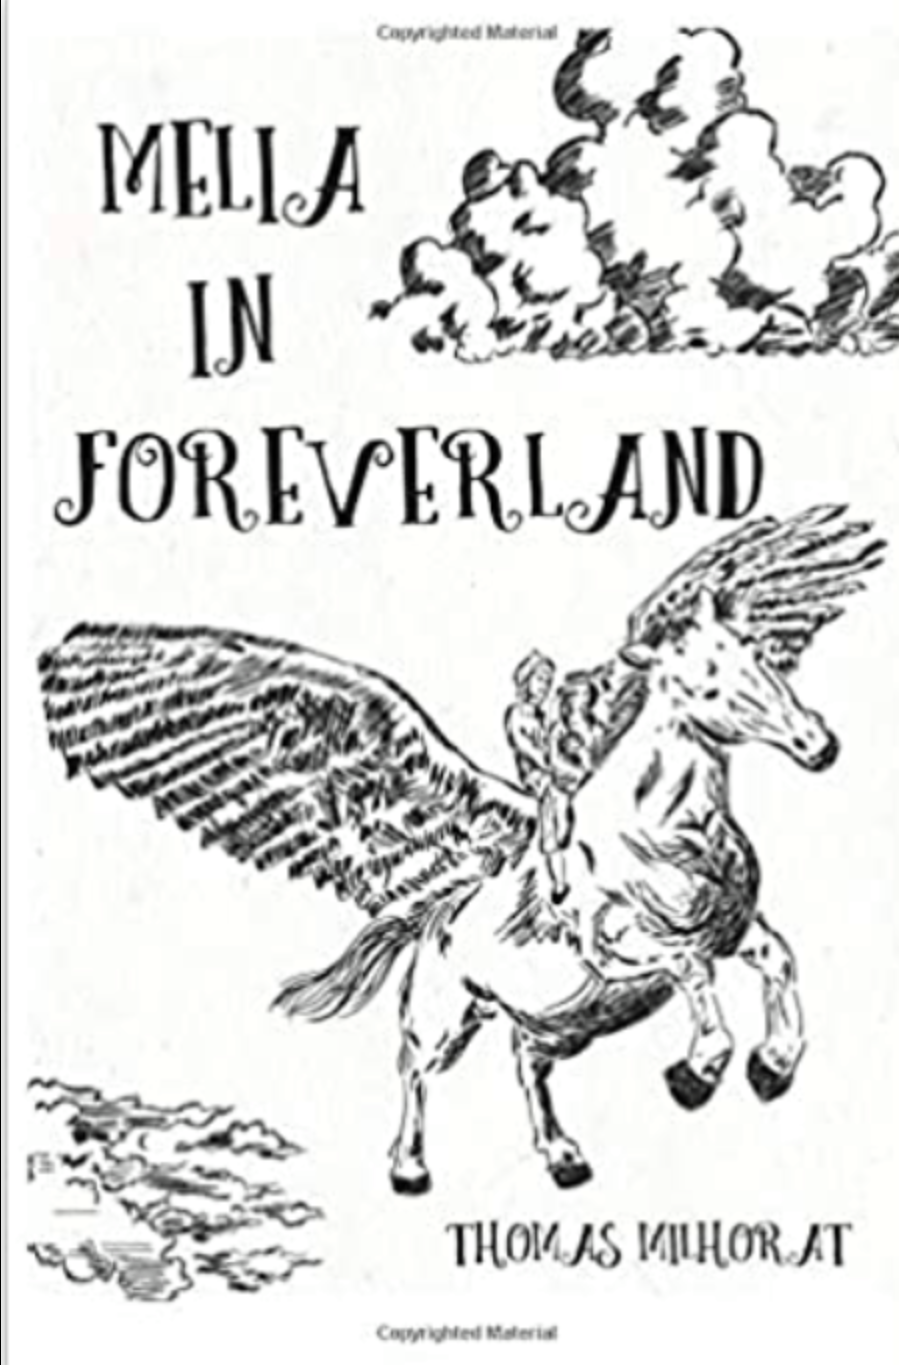 Melia in Foreverland by Dr. Thomas H. Milhorat